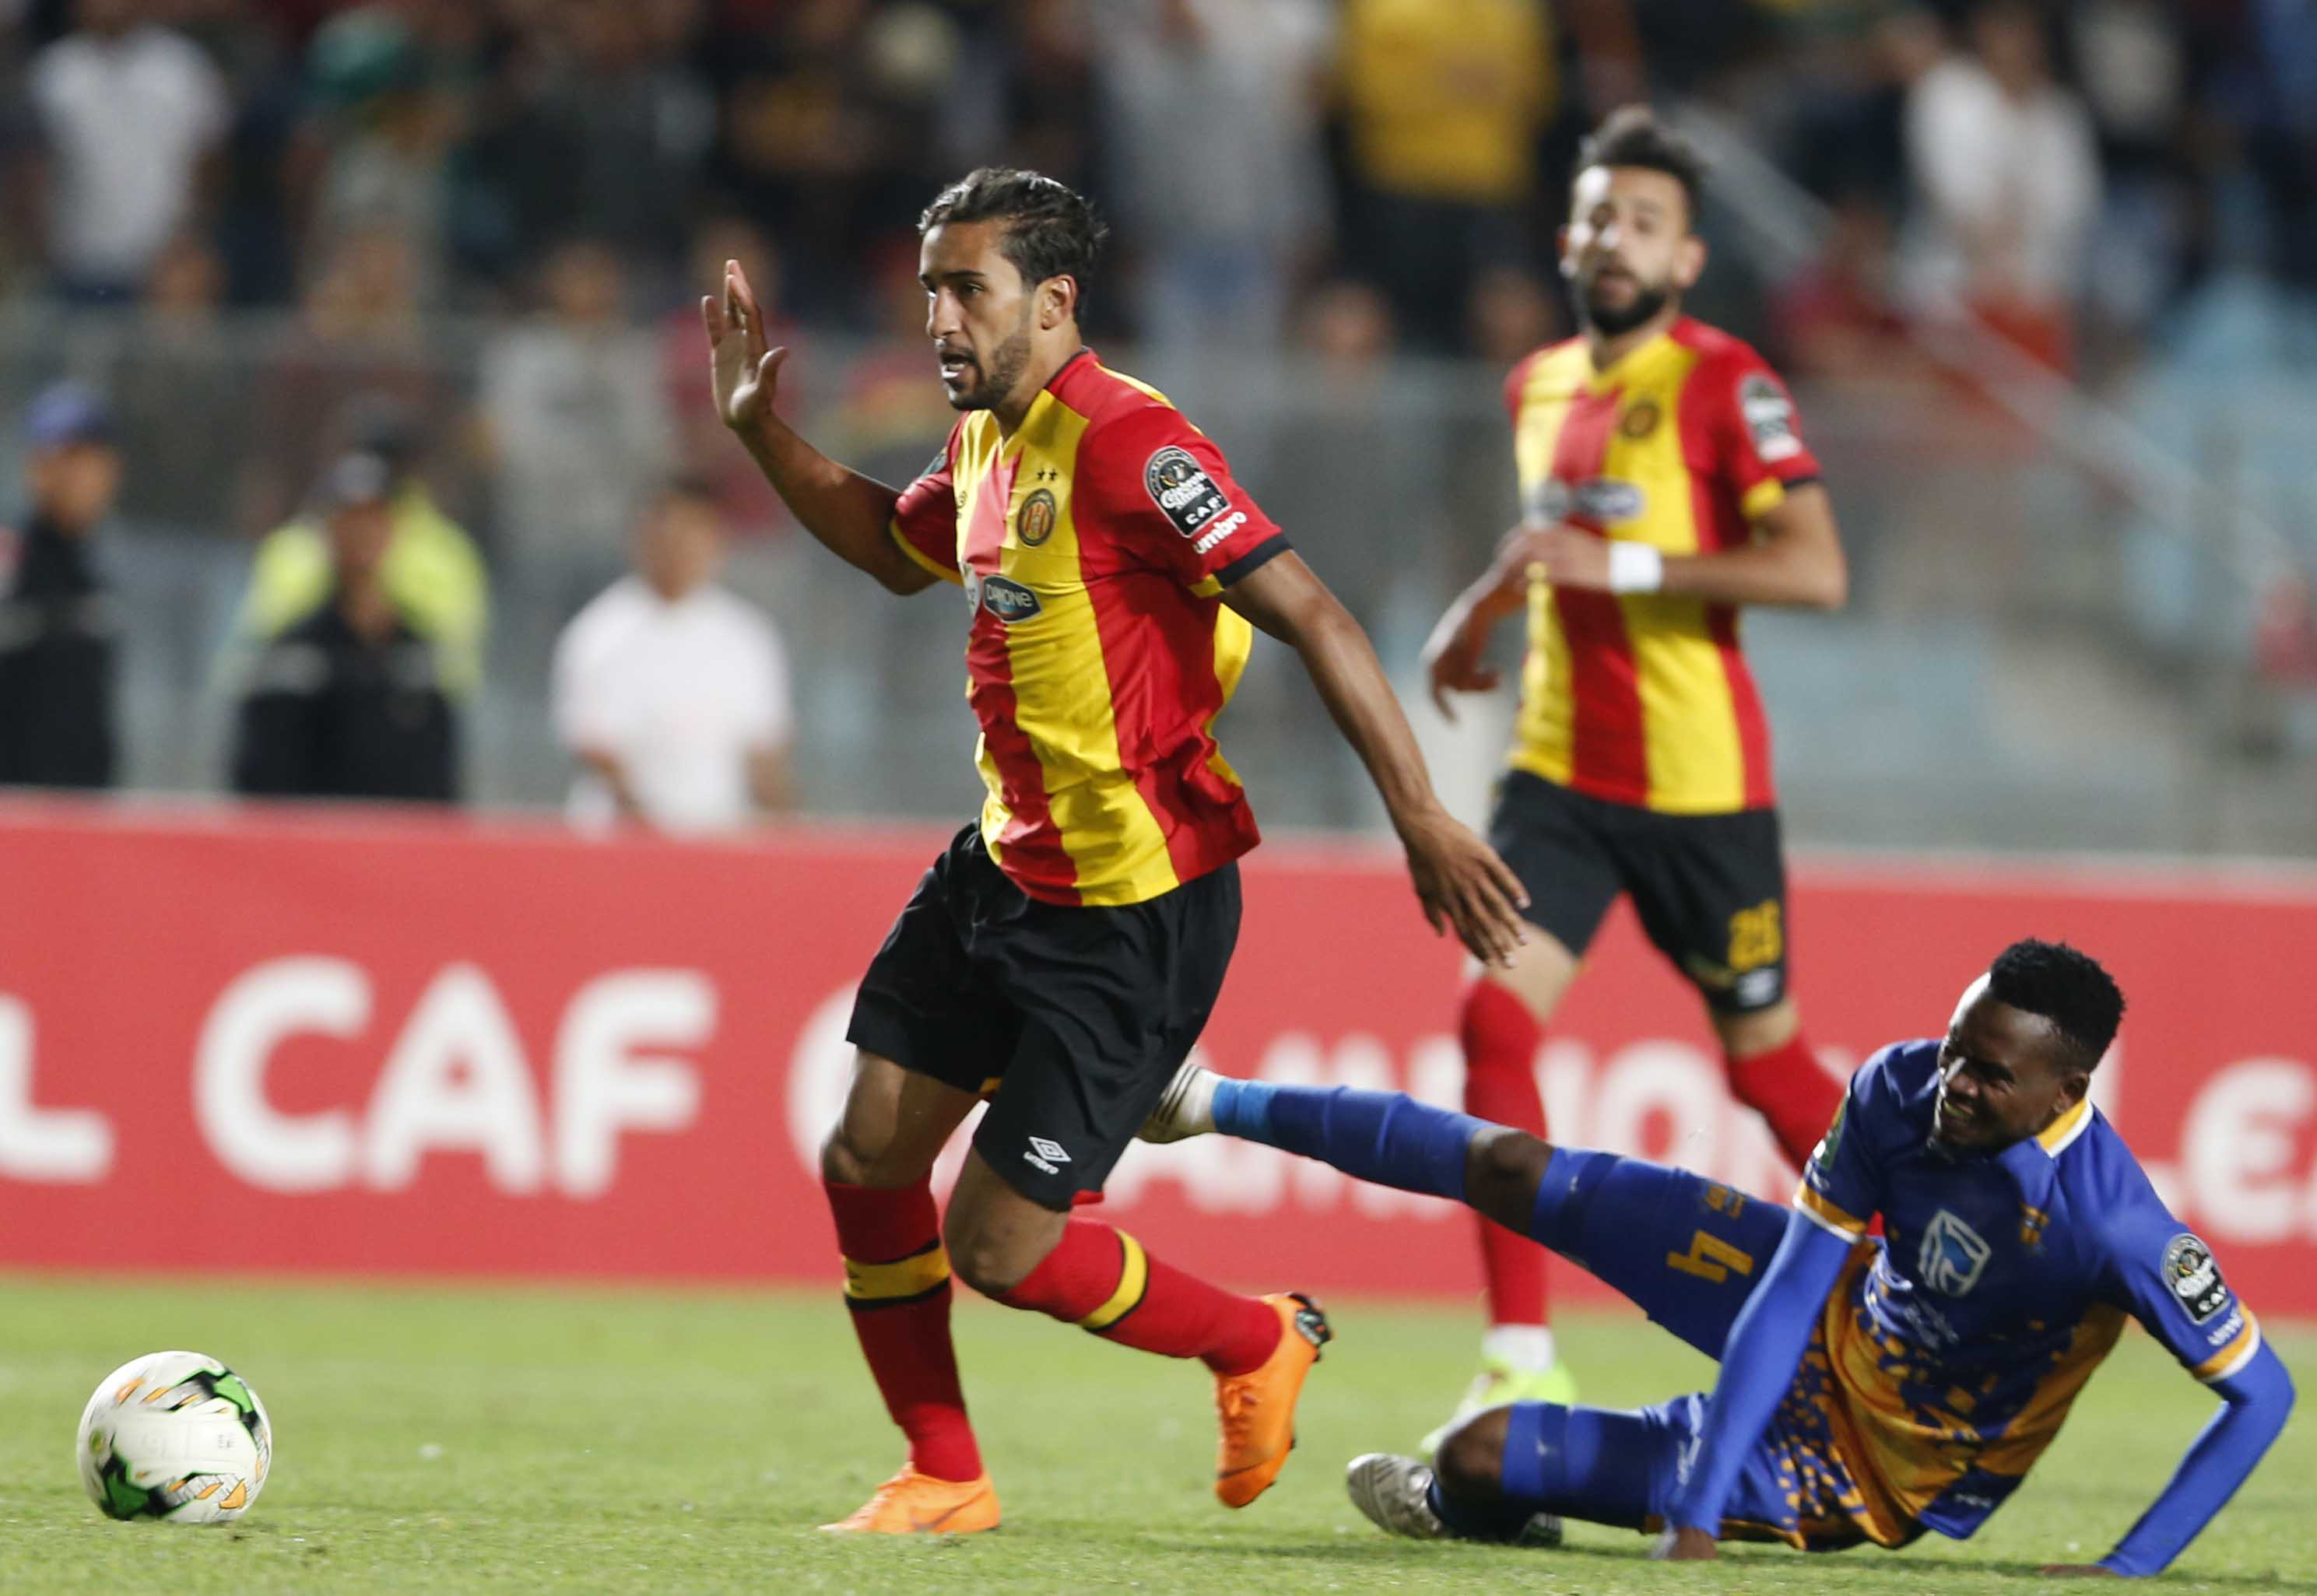 CAF CL: Township Rollers coach blames fatigue, early goal for loss to Esperance